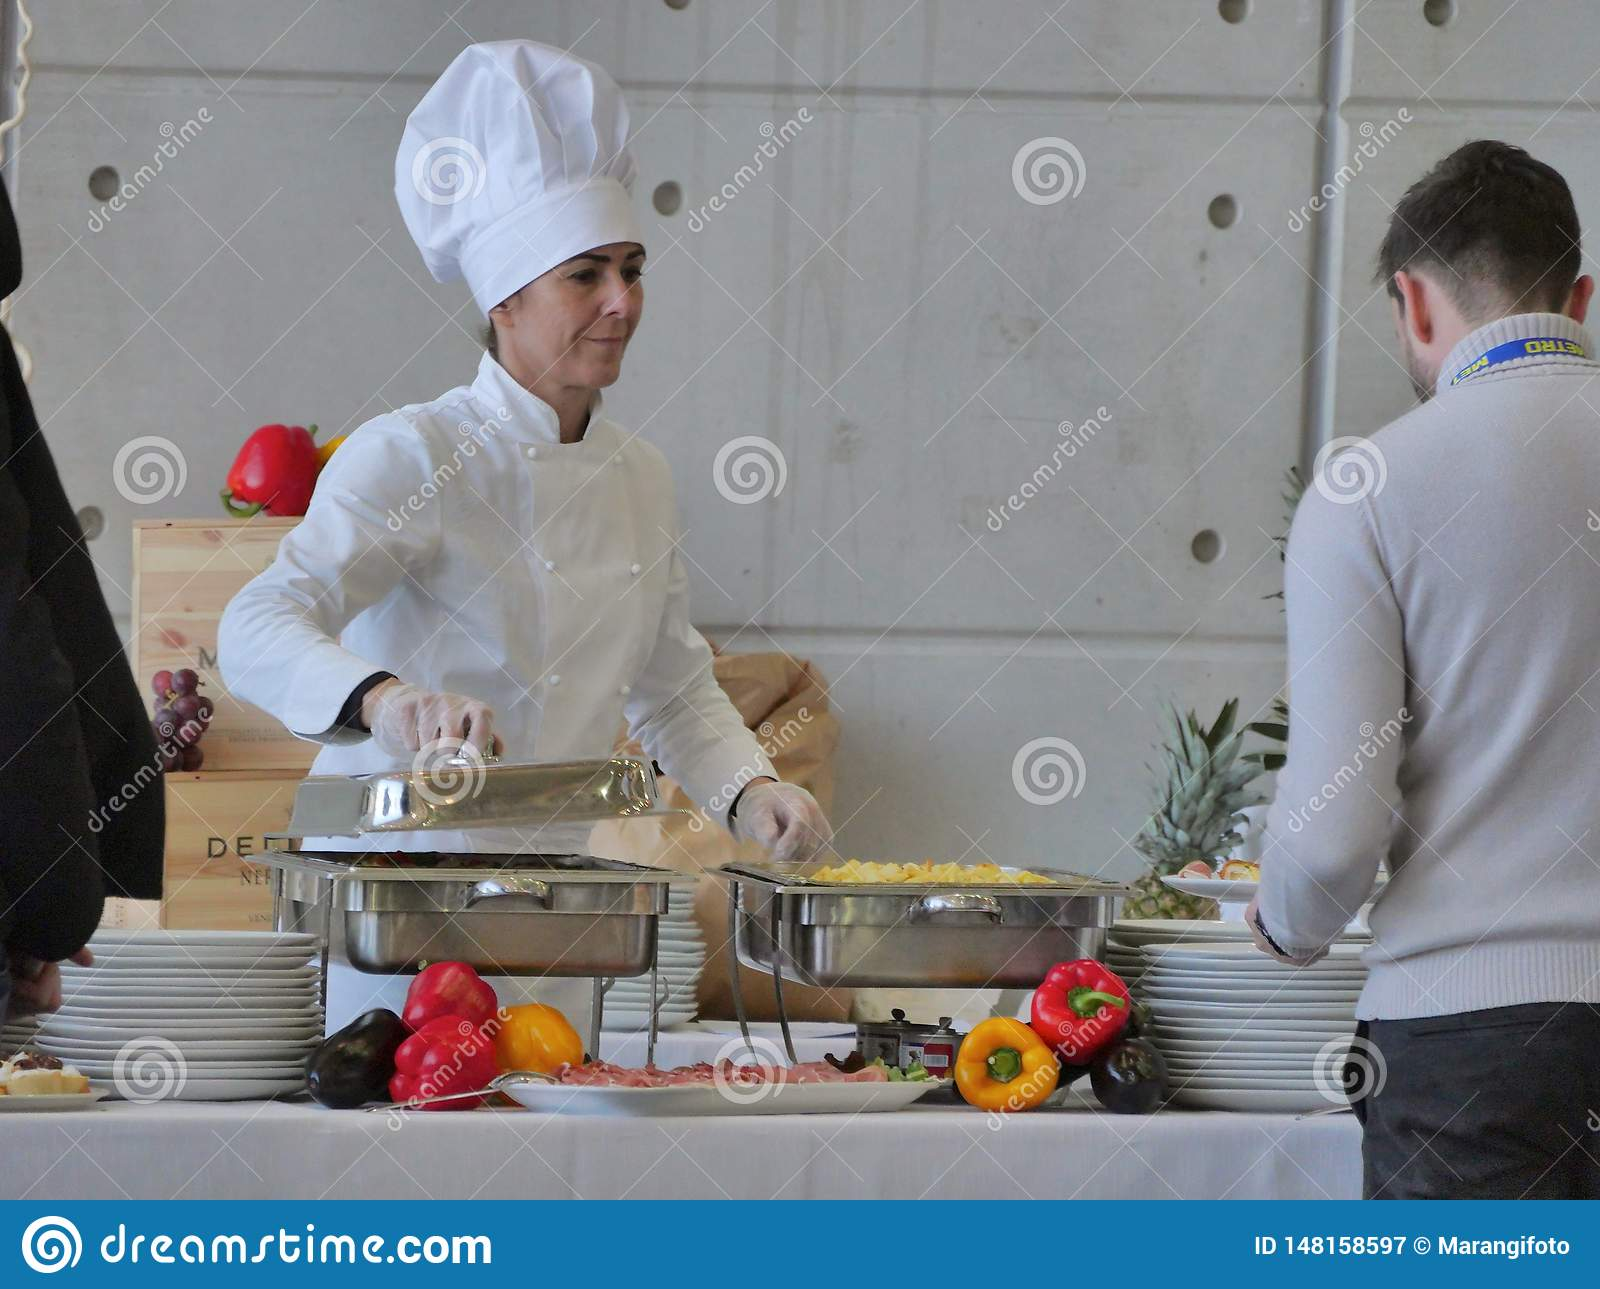 Professional female chef prepares buffet food for customers